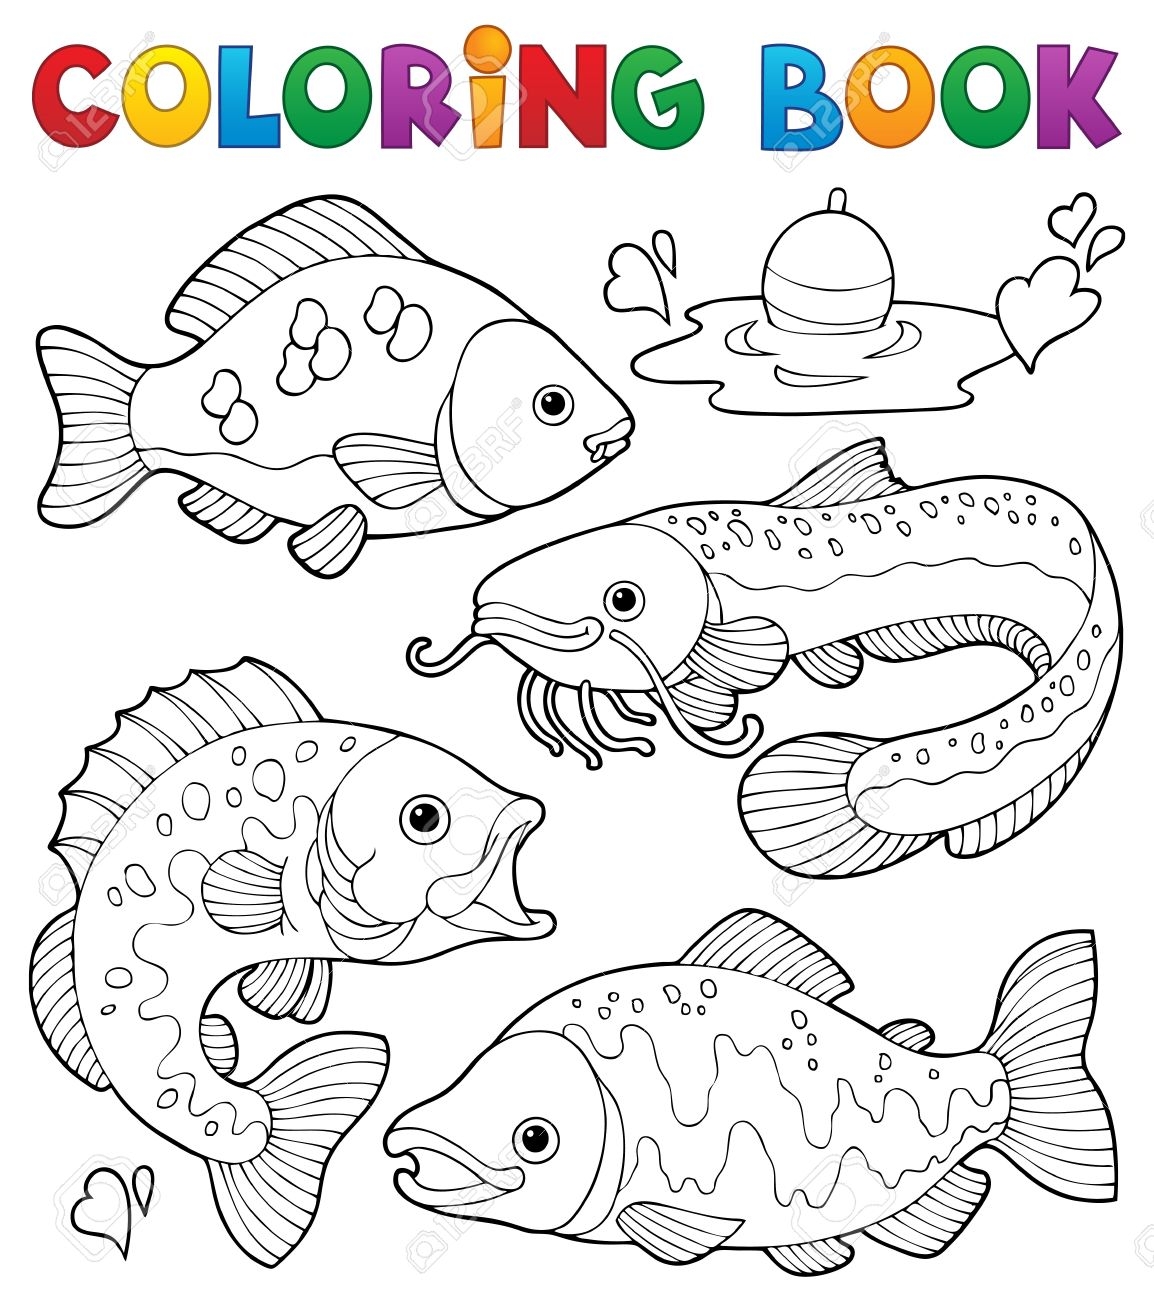 Freshwater fish clipart - Coloring Book Freshwater Fishes 1 Stock Vector 17794428